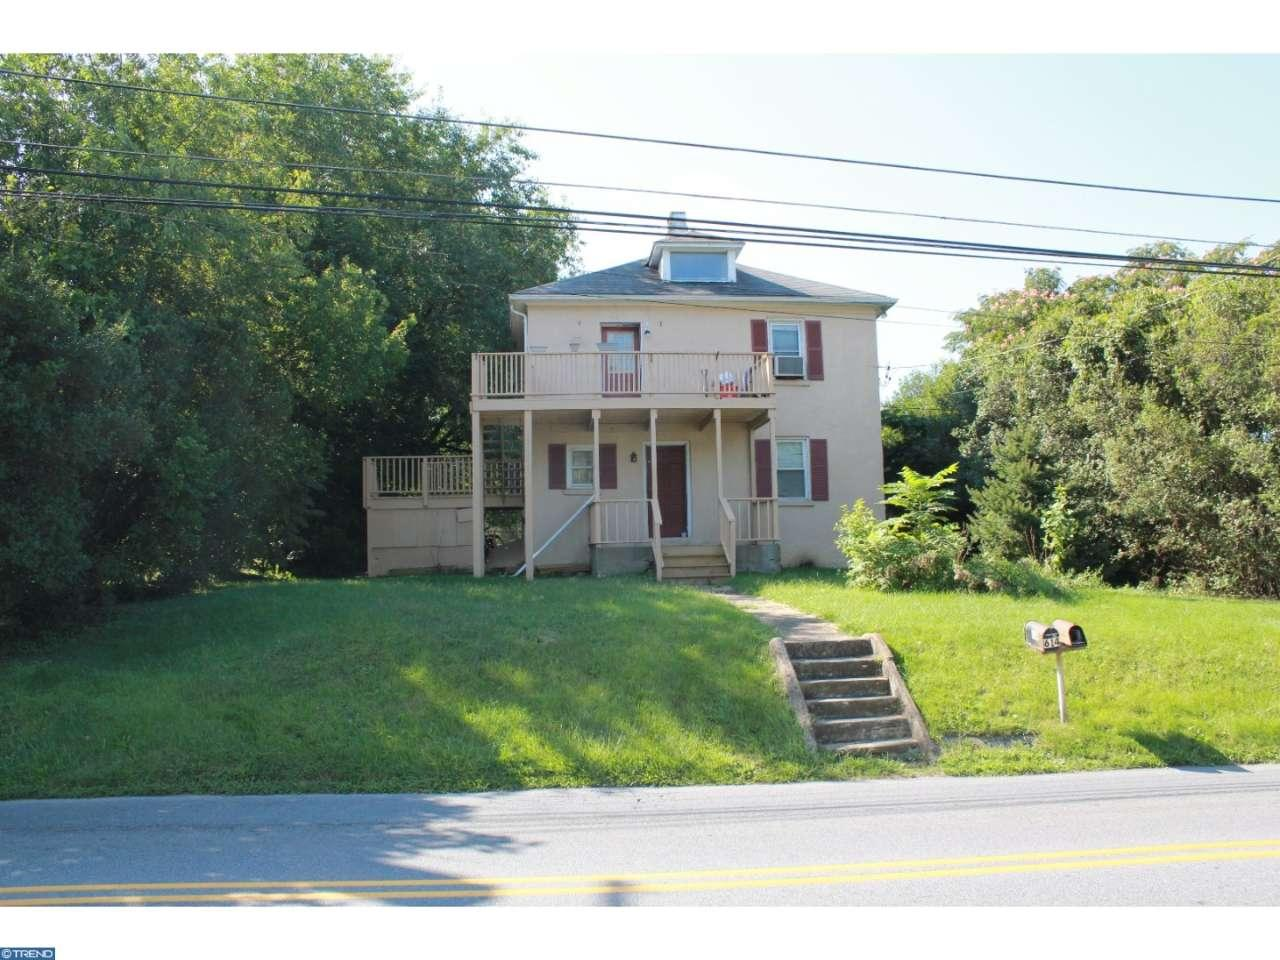 Property for sale at 614 W SOUTH ST, Kennett Square,  PA 19348